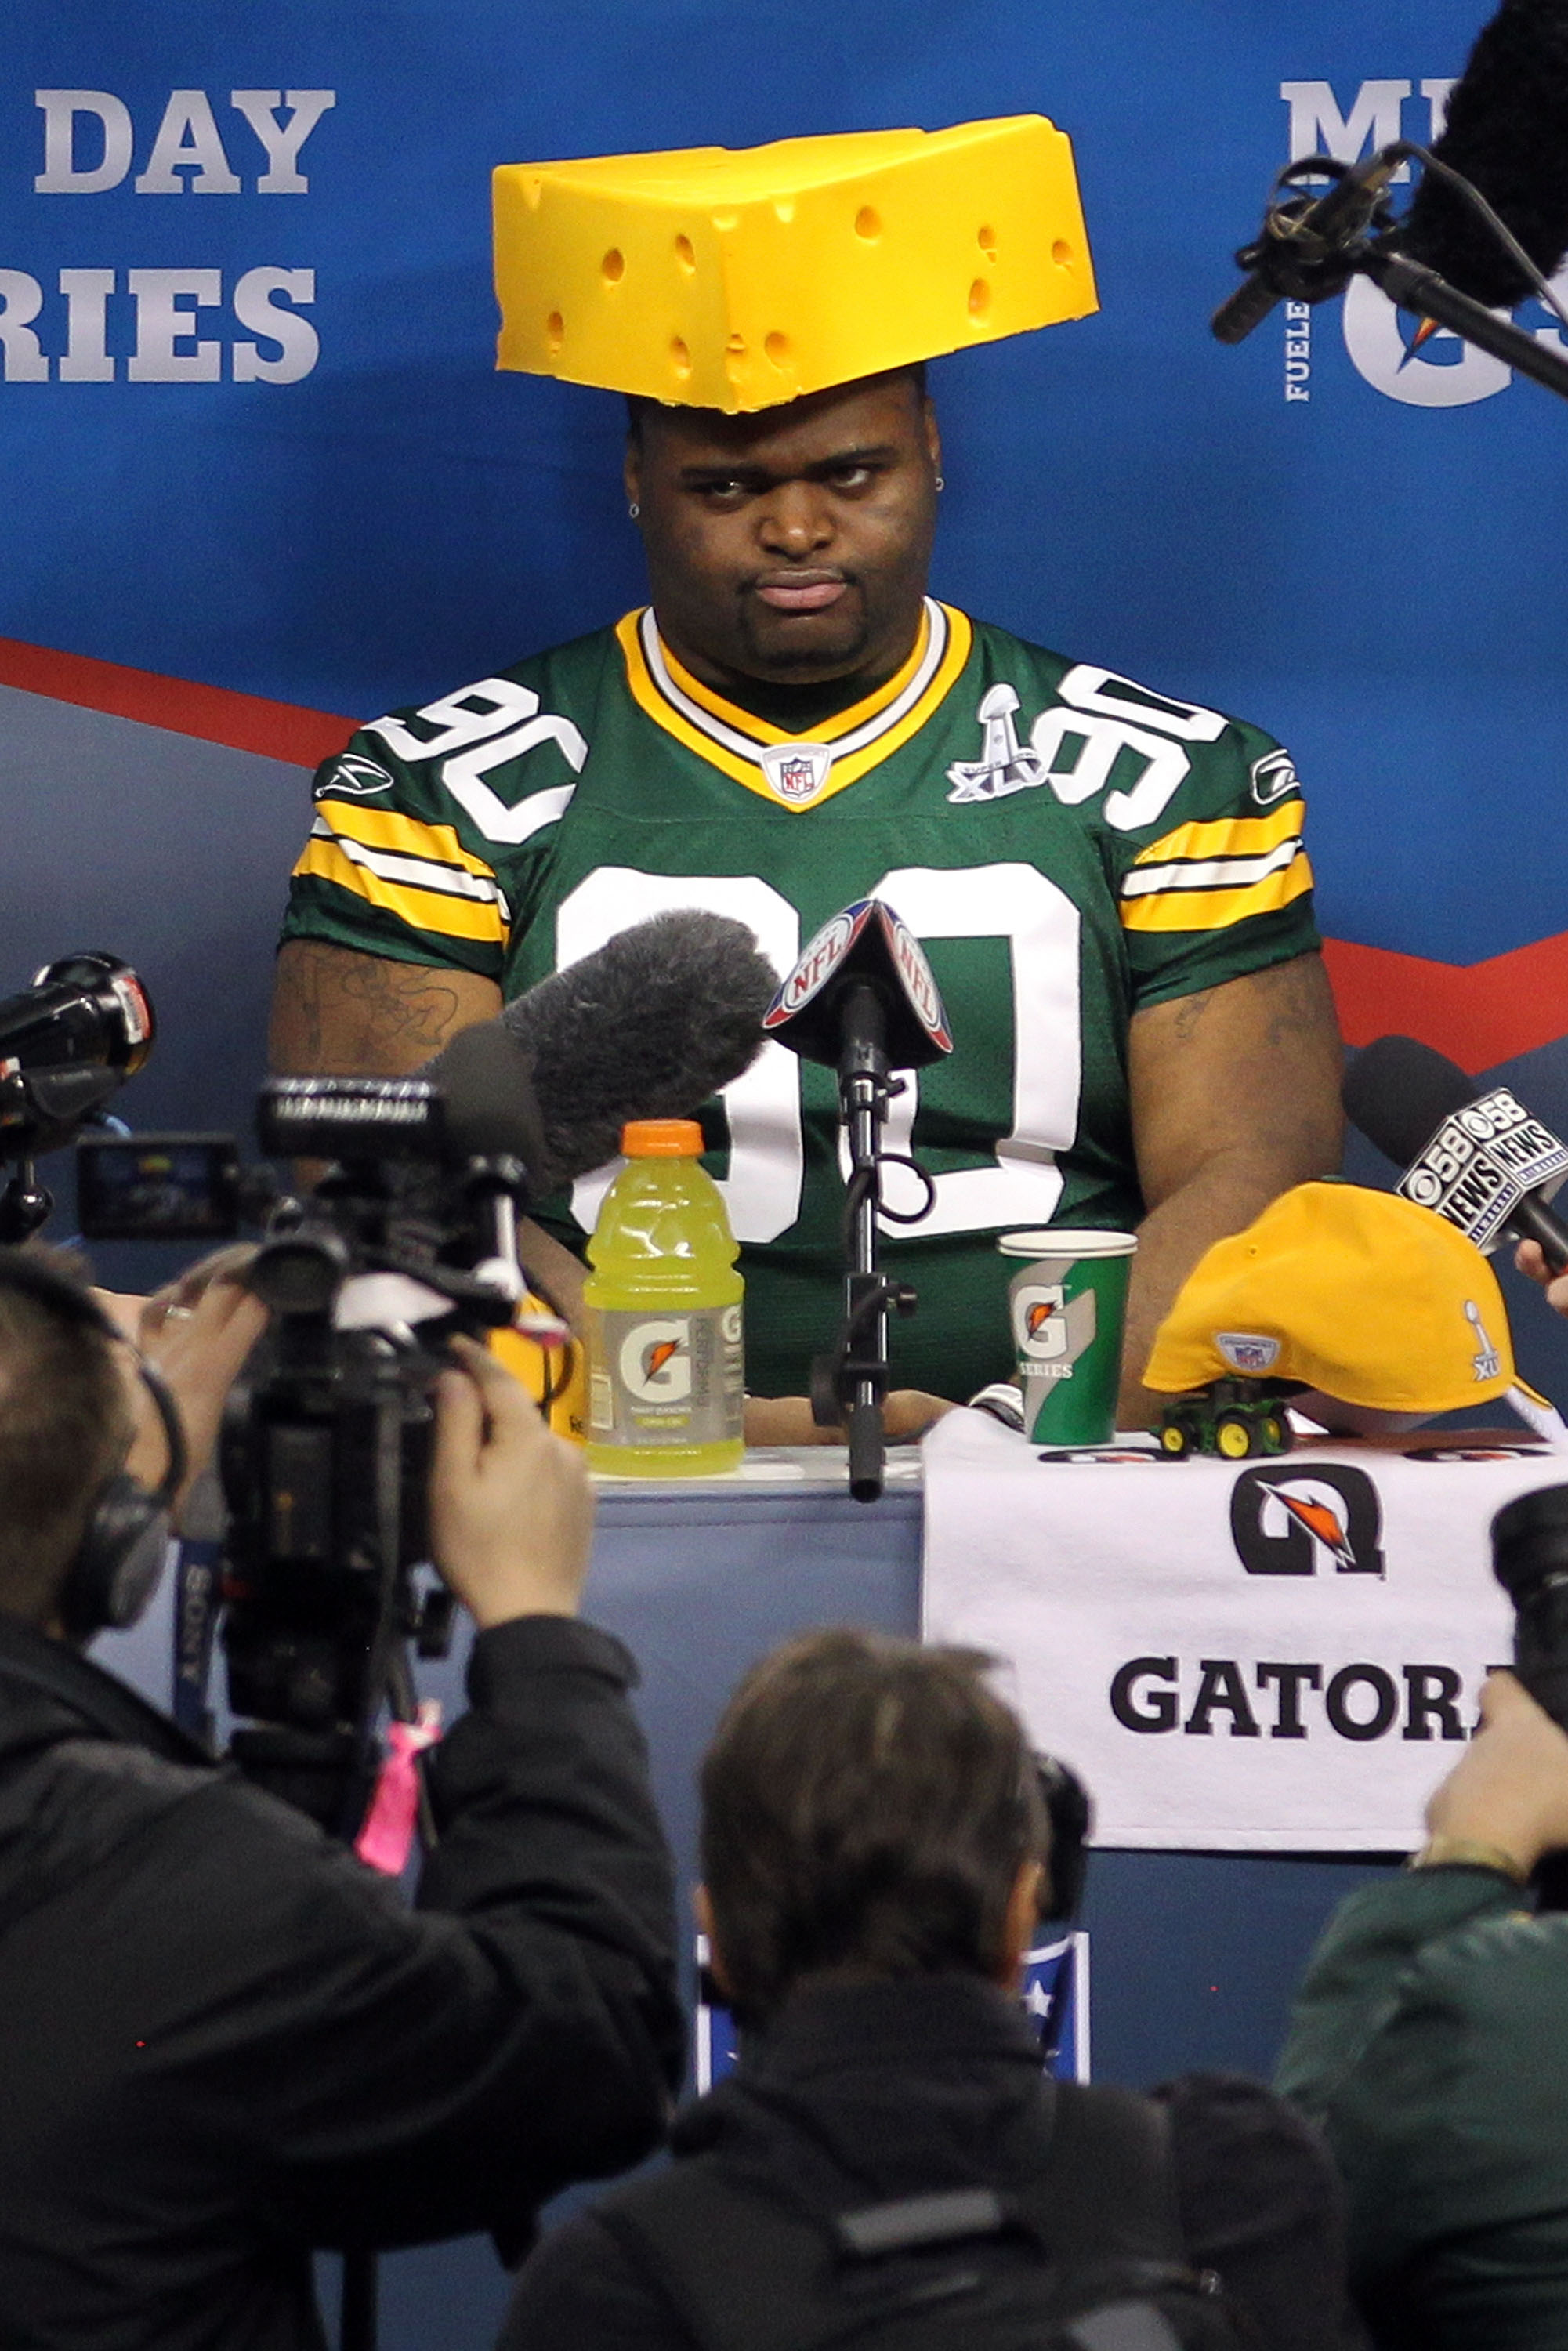 ARLINGTON, TX - FEBRUARY 01:  B.J. Raji #90 of the Green Bay Packers puts on a cheesehead during Super Bowl XLV Media Day ahead of Super Bowl XLV at Cowboys Stadium on February 1, 2011 in Arlington, Texas. The Pittsburgh Steelers will play the Green Bay P